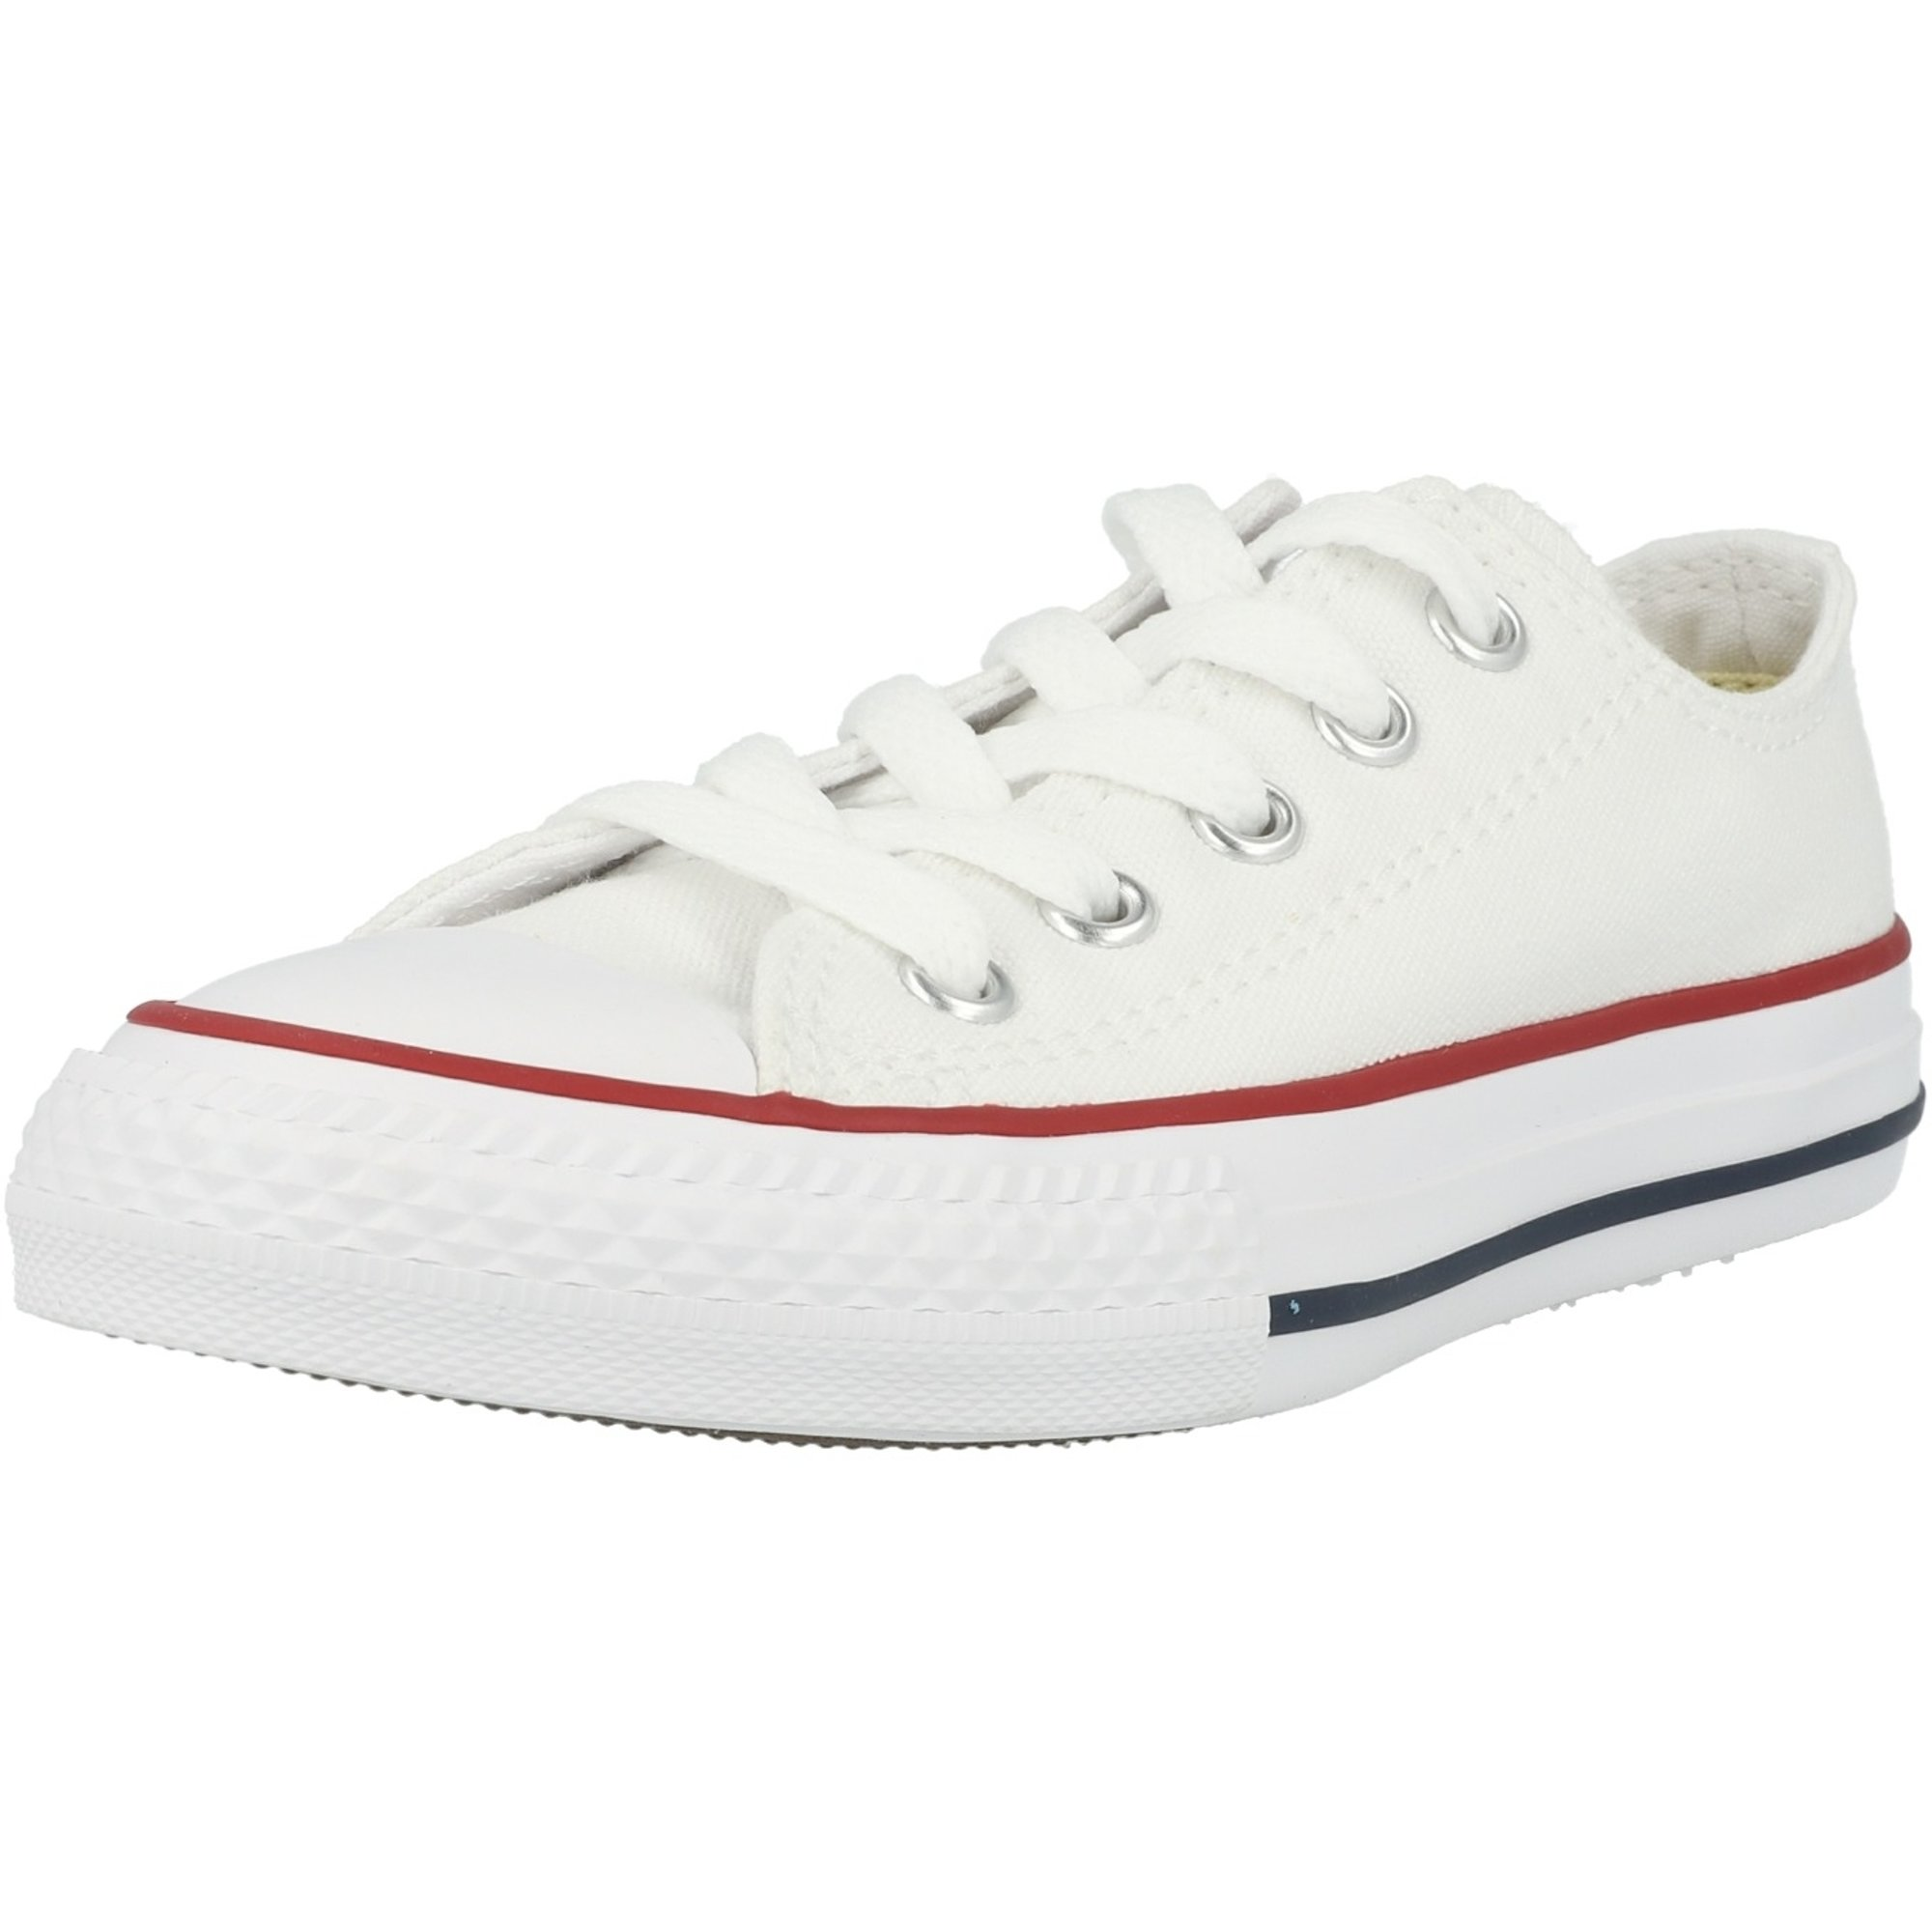 Converse Chuck Taylor All Star Ox Optical White Textile Junior